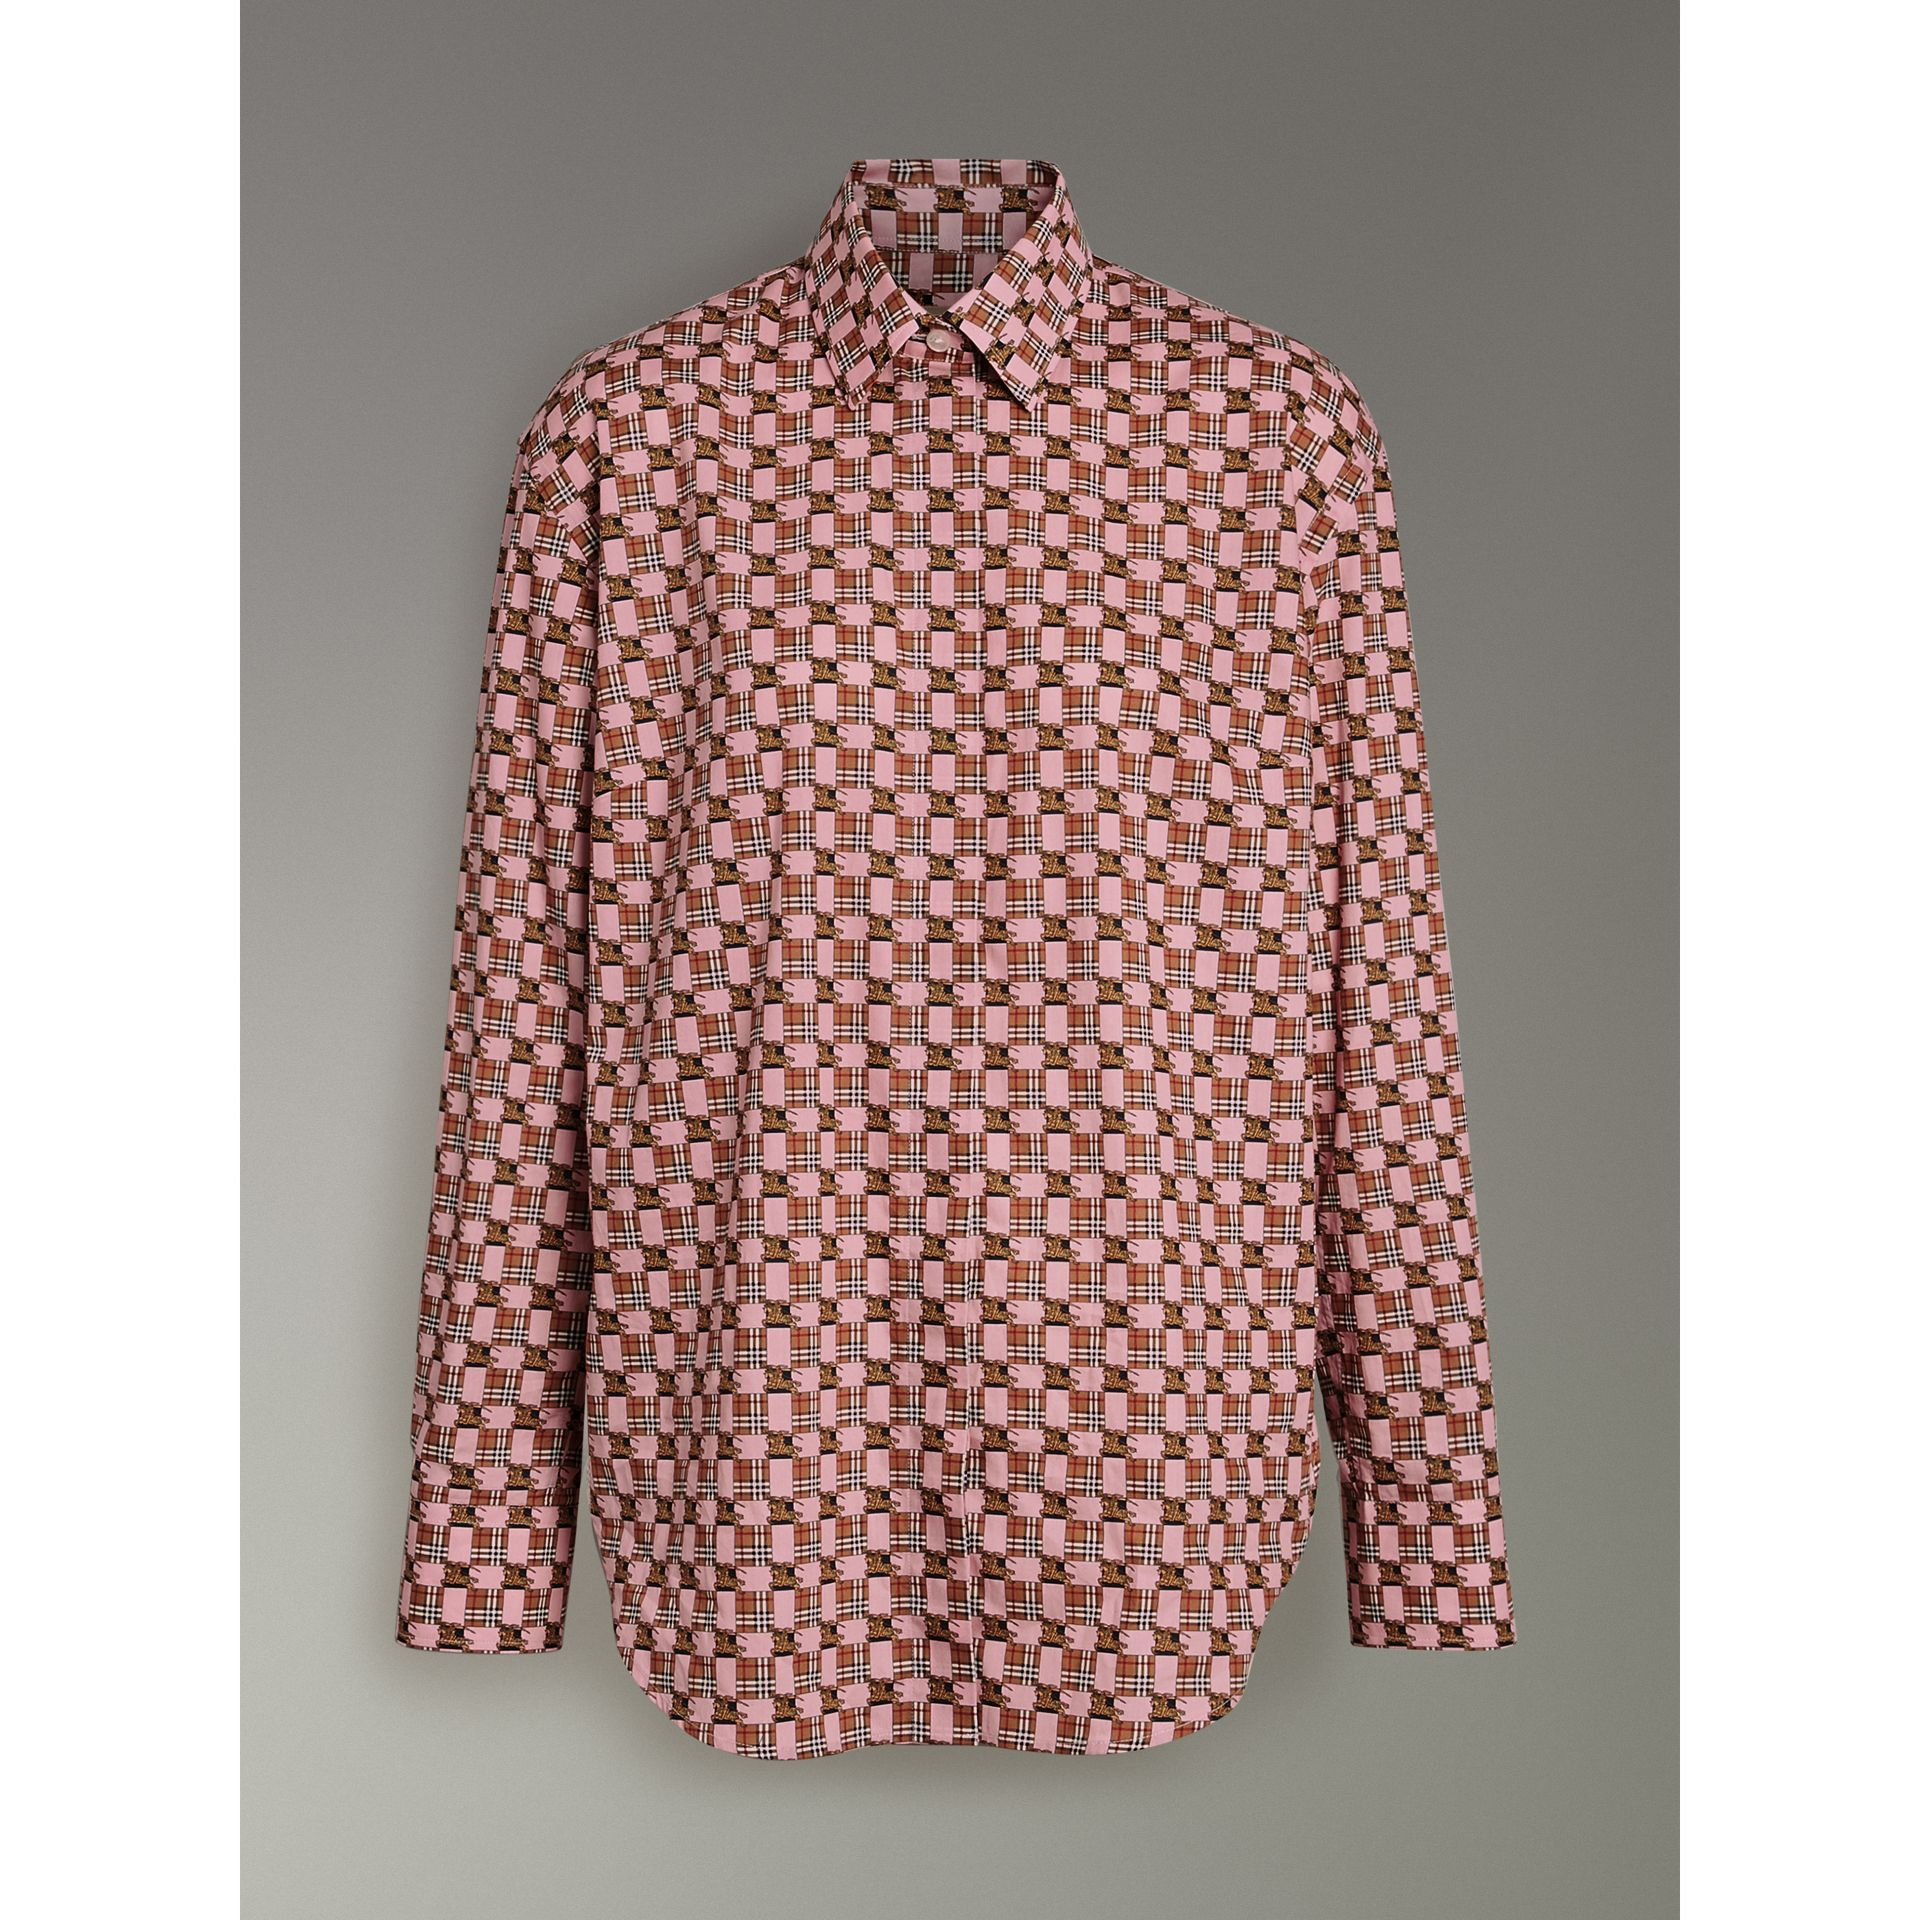 Tiled Archive Print Cotton Shirt in Pink - Women | Burberry Canada - gallery image 3